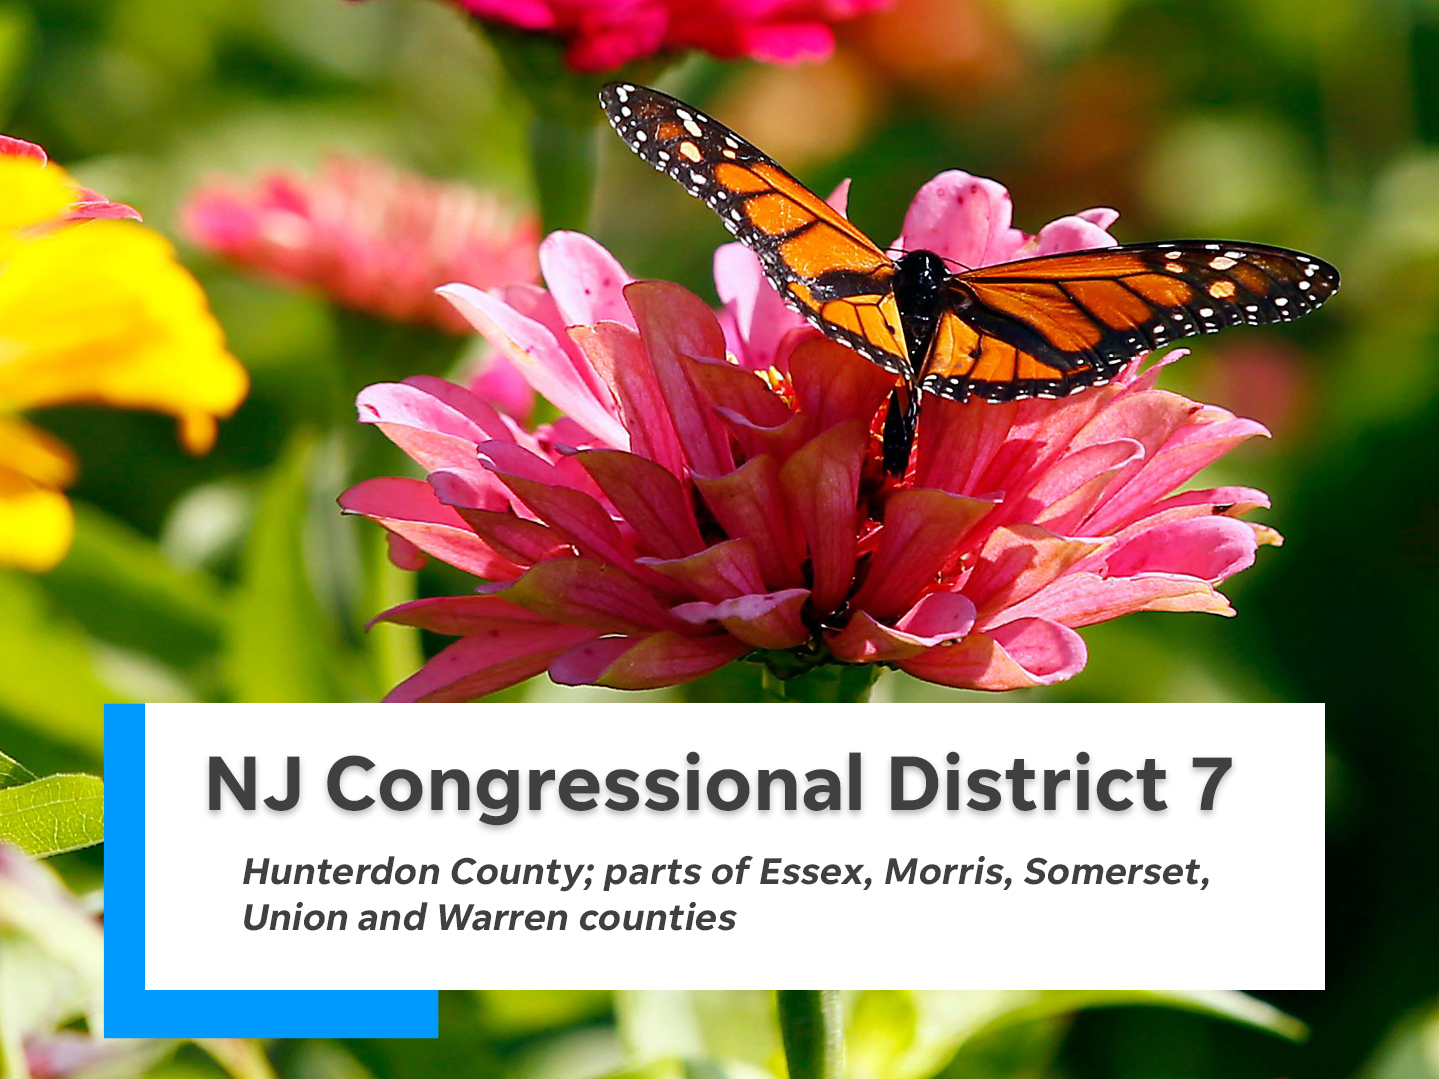 NJ's seventh congressional district is comprised of Hunterdon County and parts of Essex, Morris, Somerset, Union and Warren counties.